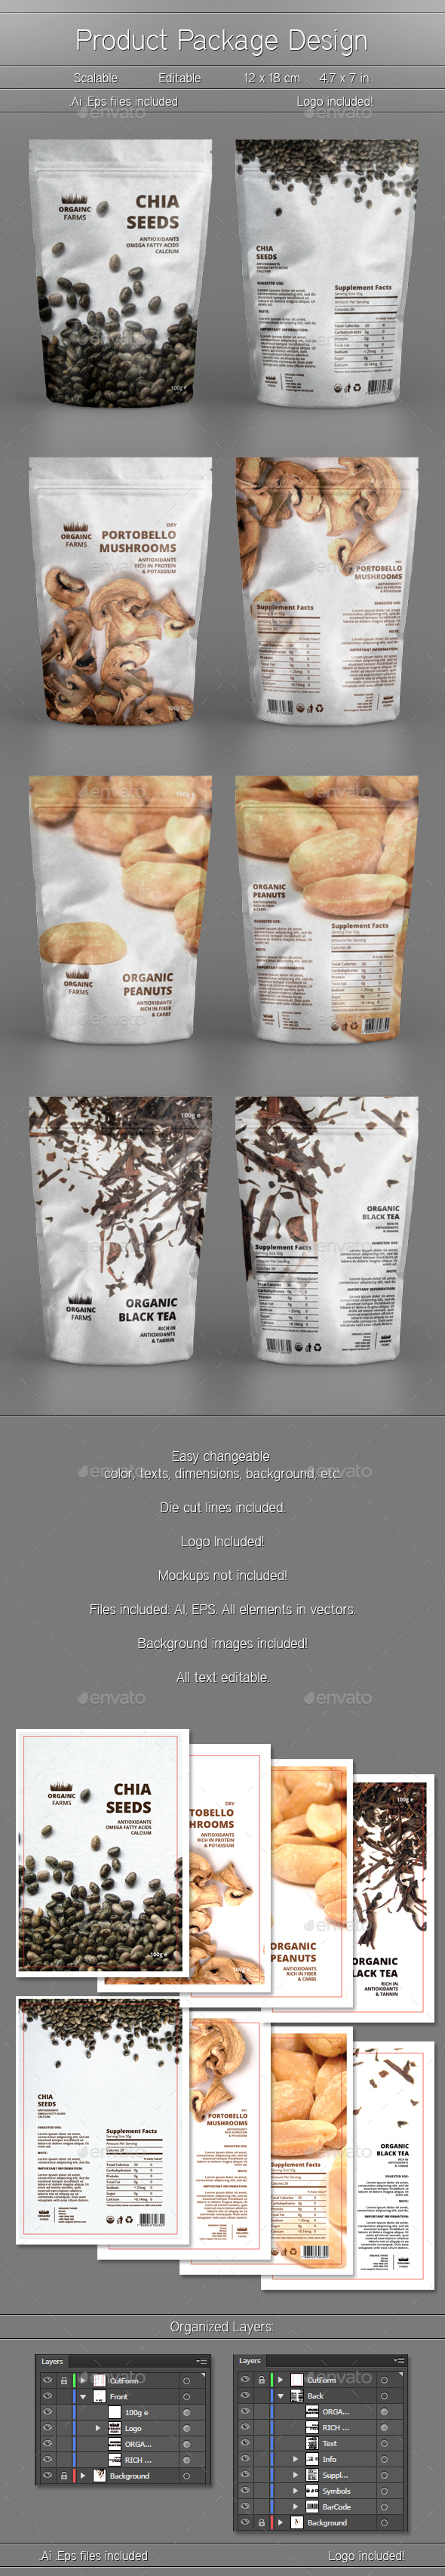 Package Design Template - Packaging Print Templates